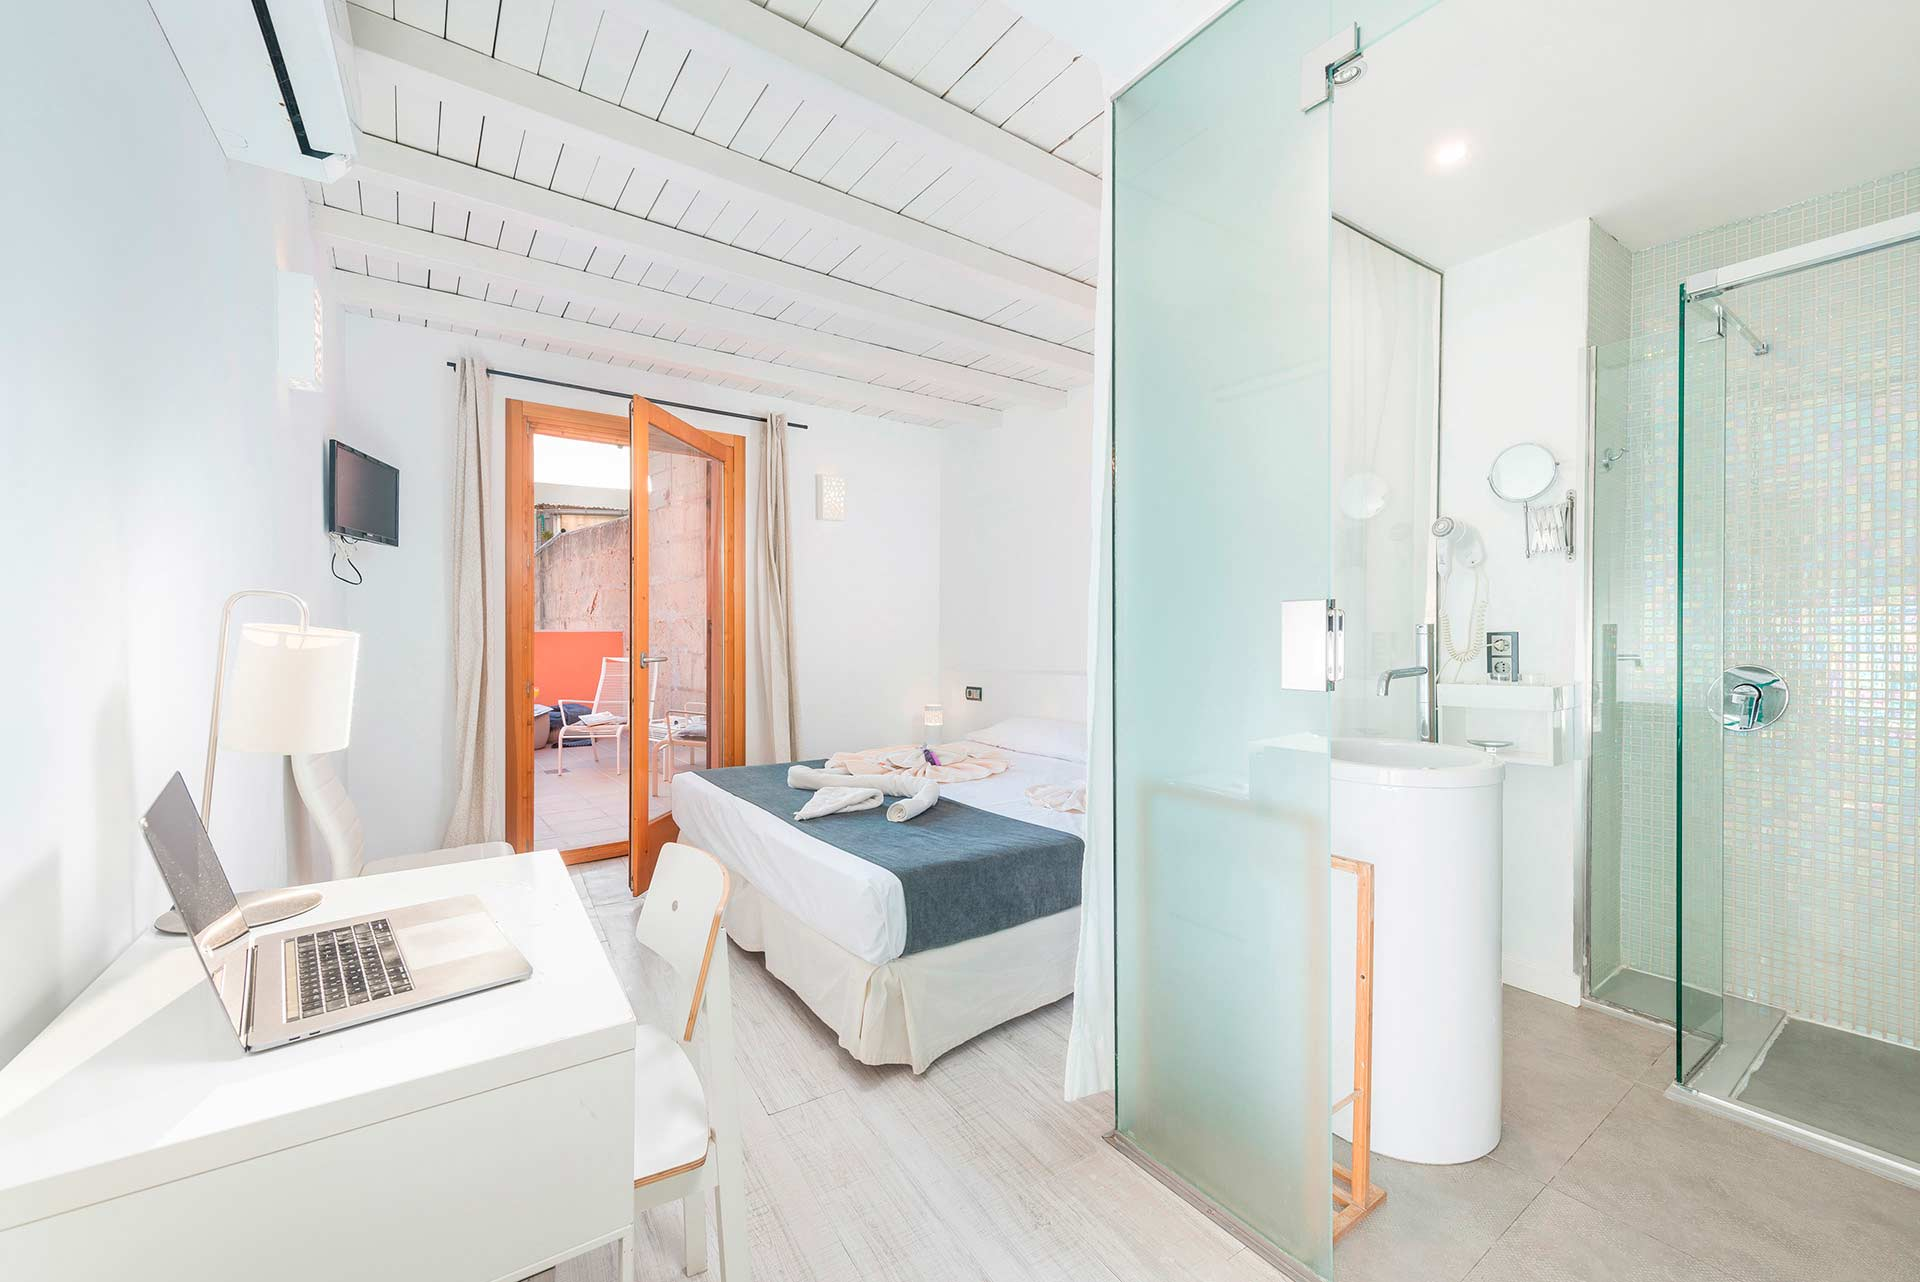 Alcudia Petit Charming Accommodation